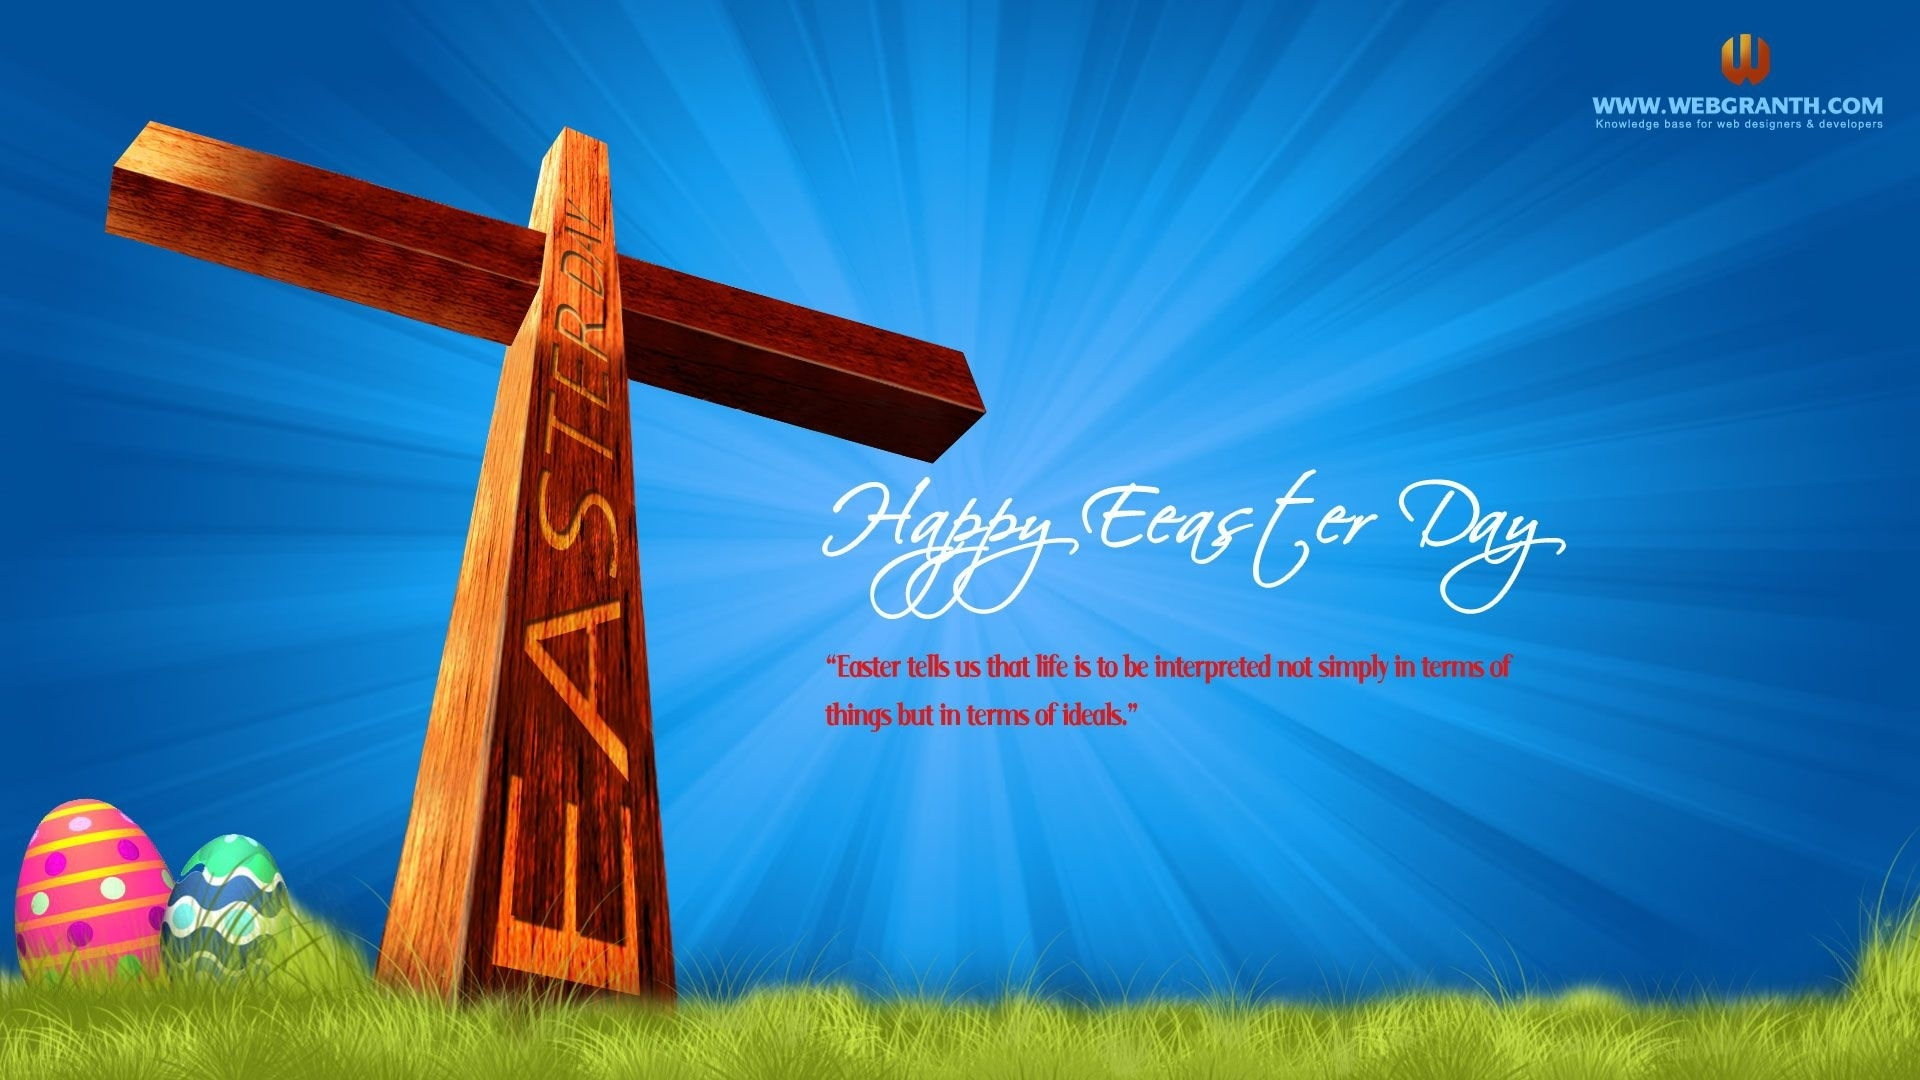 cross devotional religious easter wallpaper free download-1: view